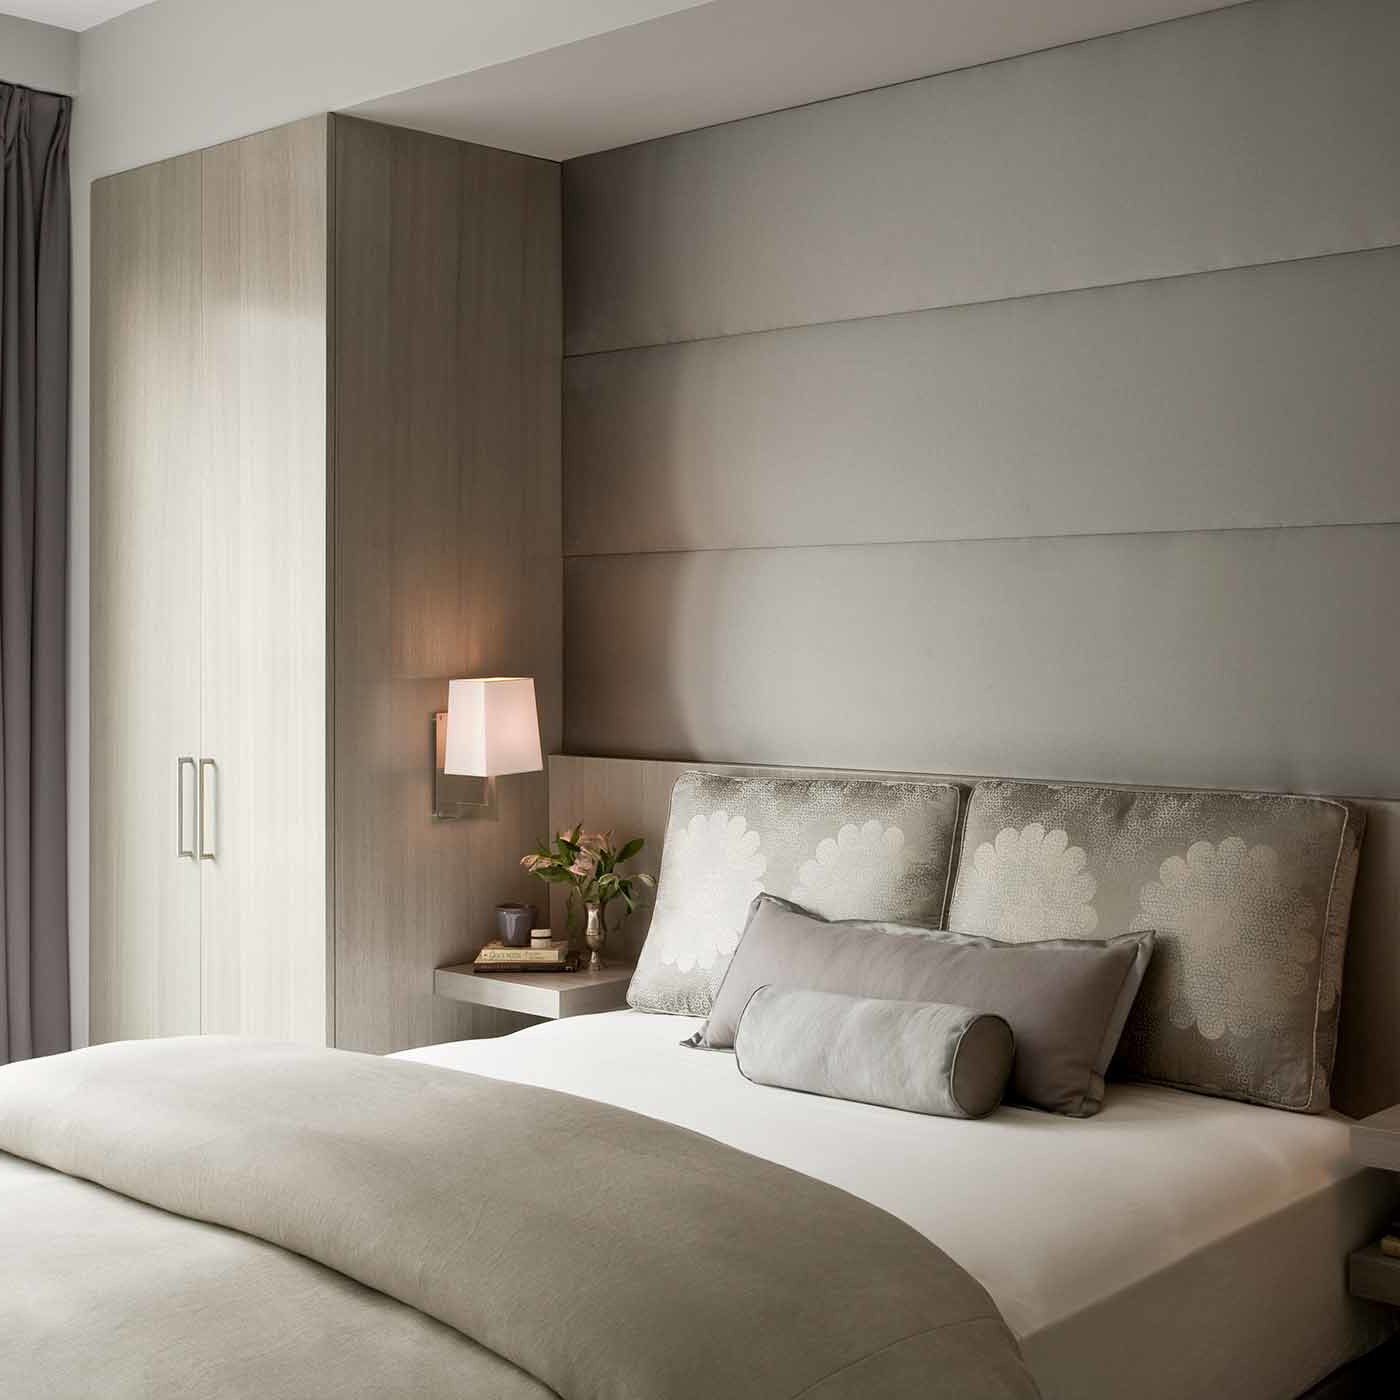 Guest bedroom design with a palette of icy lavender and champagne tones adorned with delicate sconces